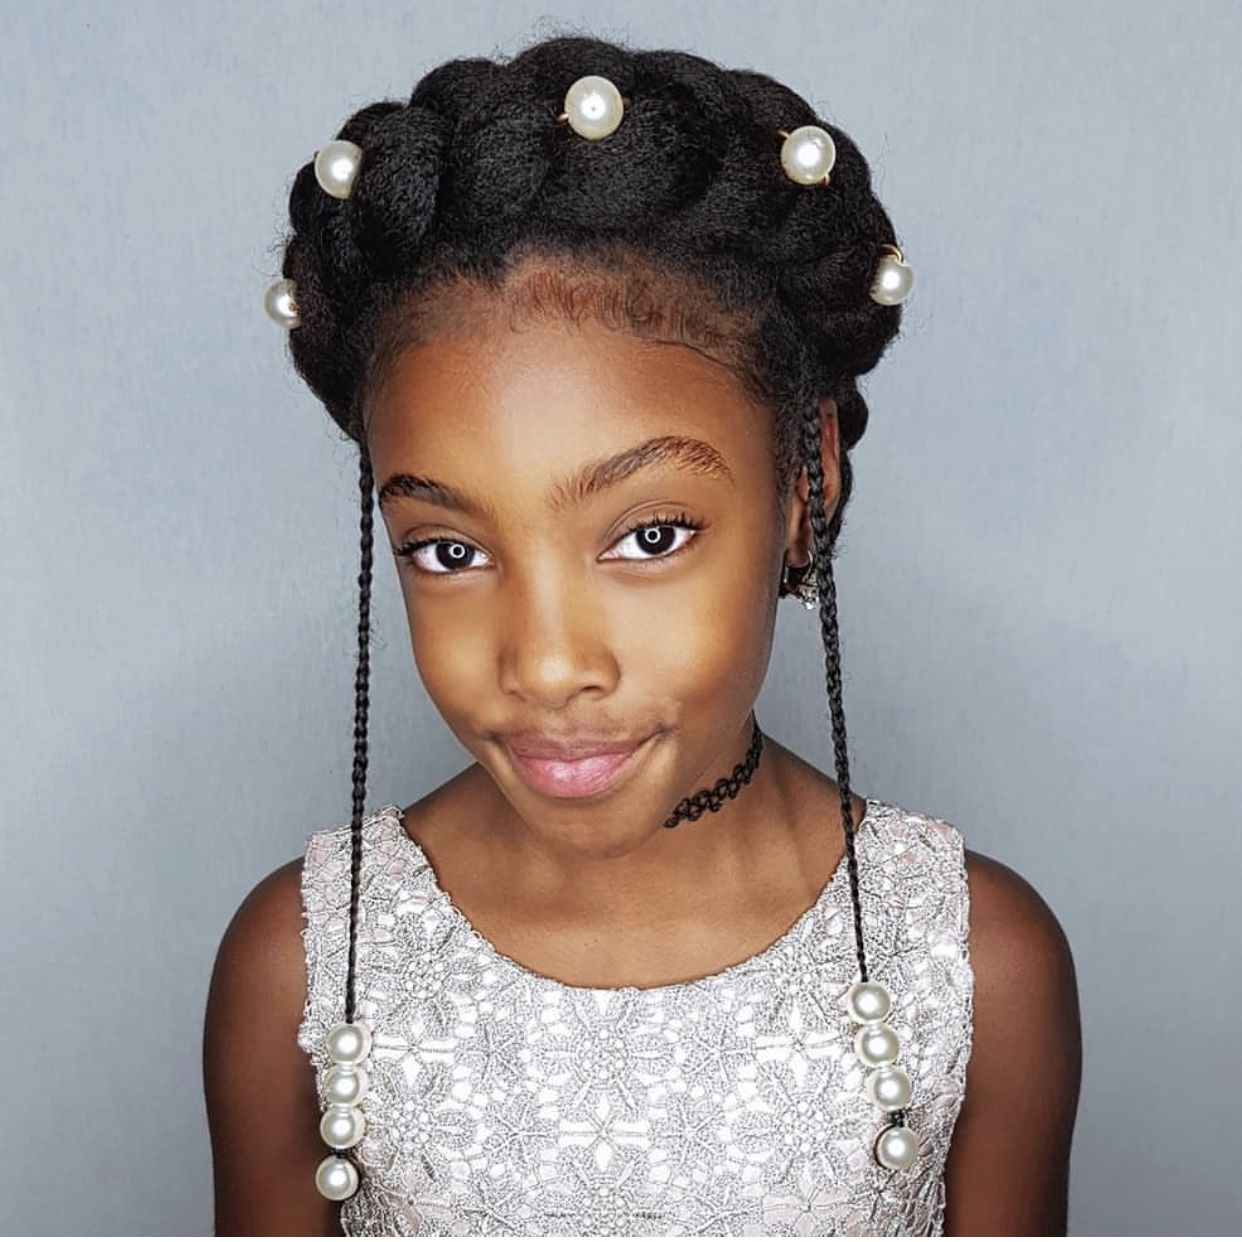 Christmas Hairstyles For Black Hair.Christmas Natural Hairstyles For Kids Holiday Hair Shop Www